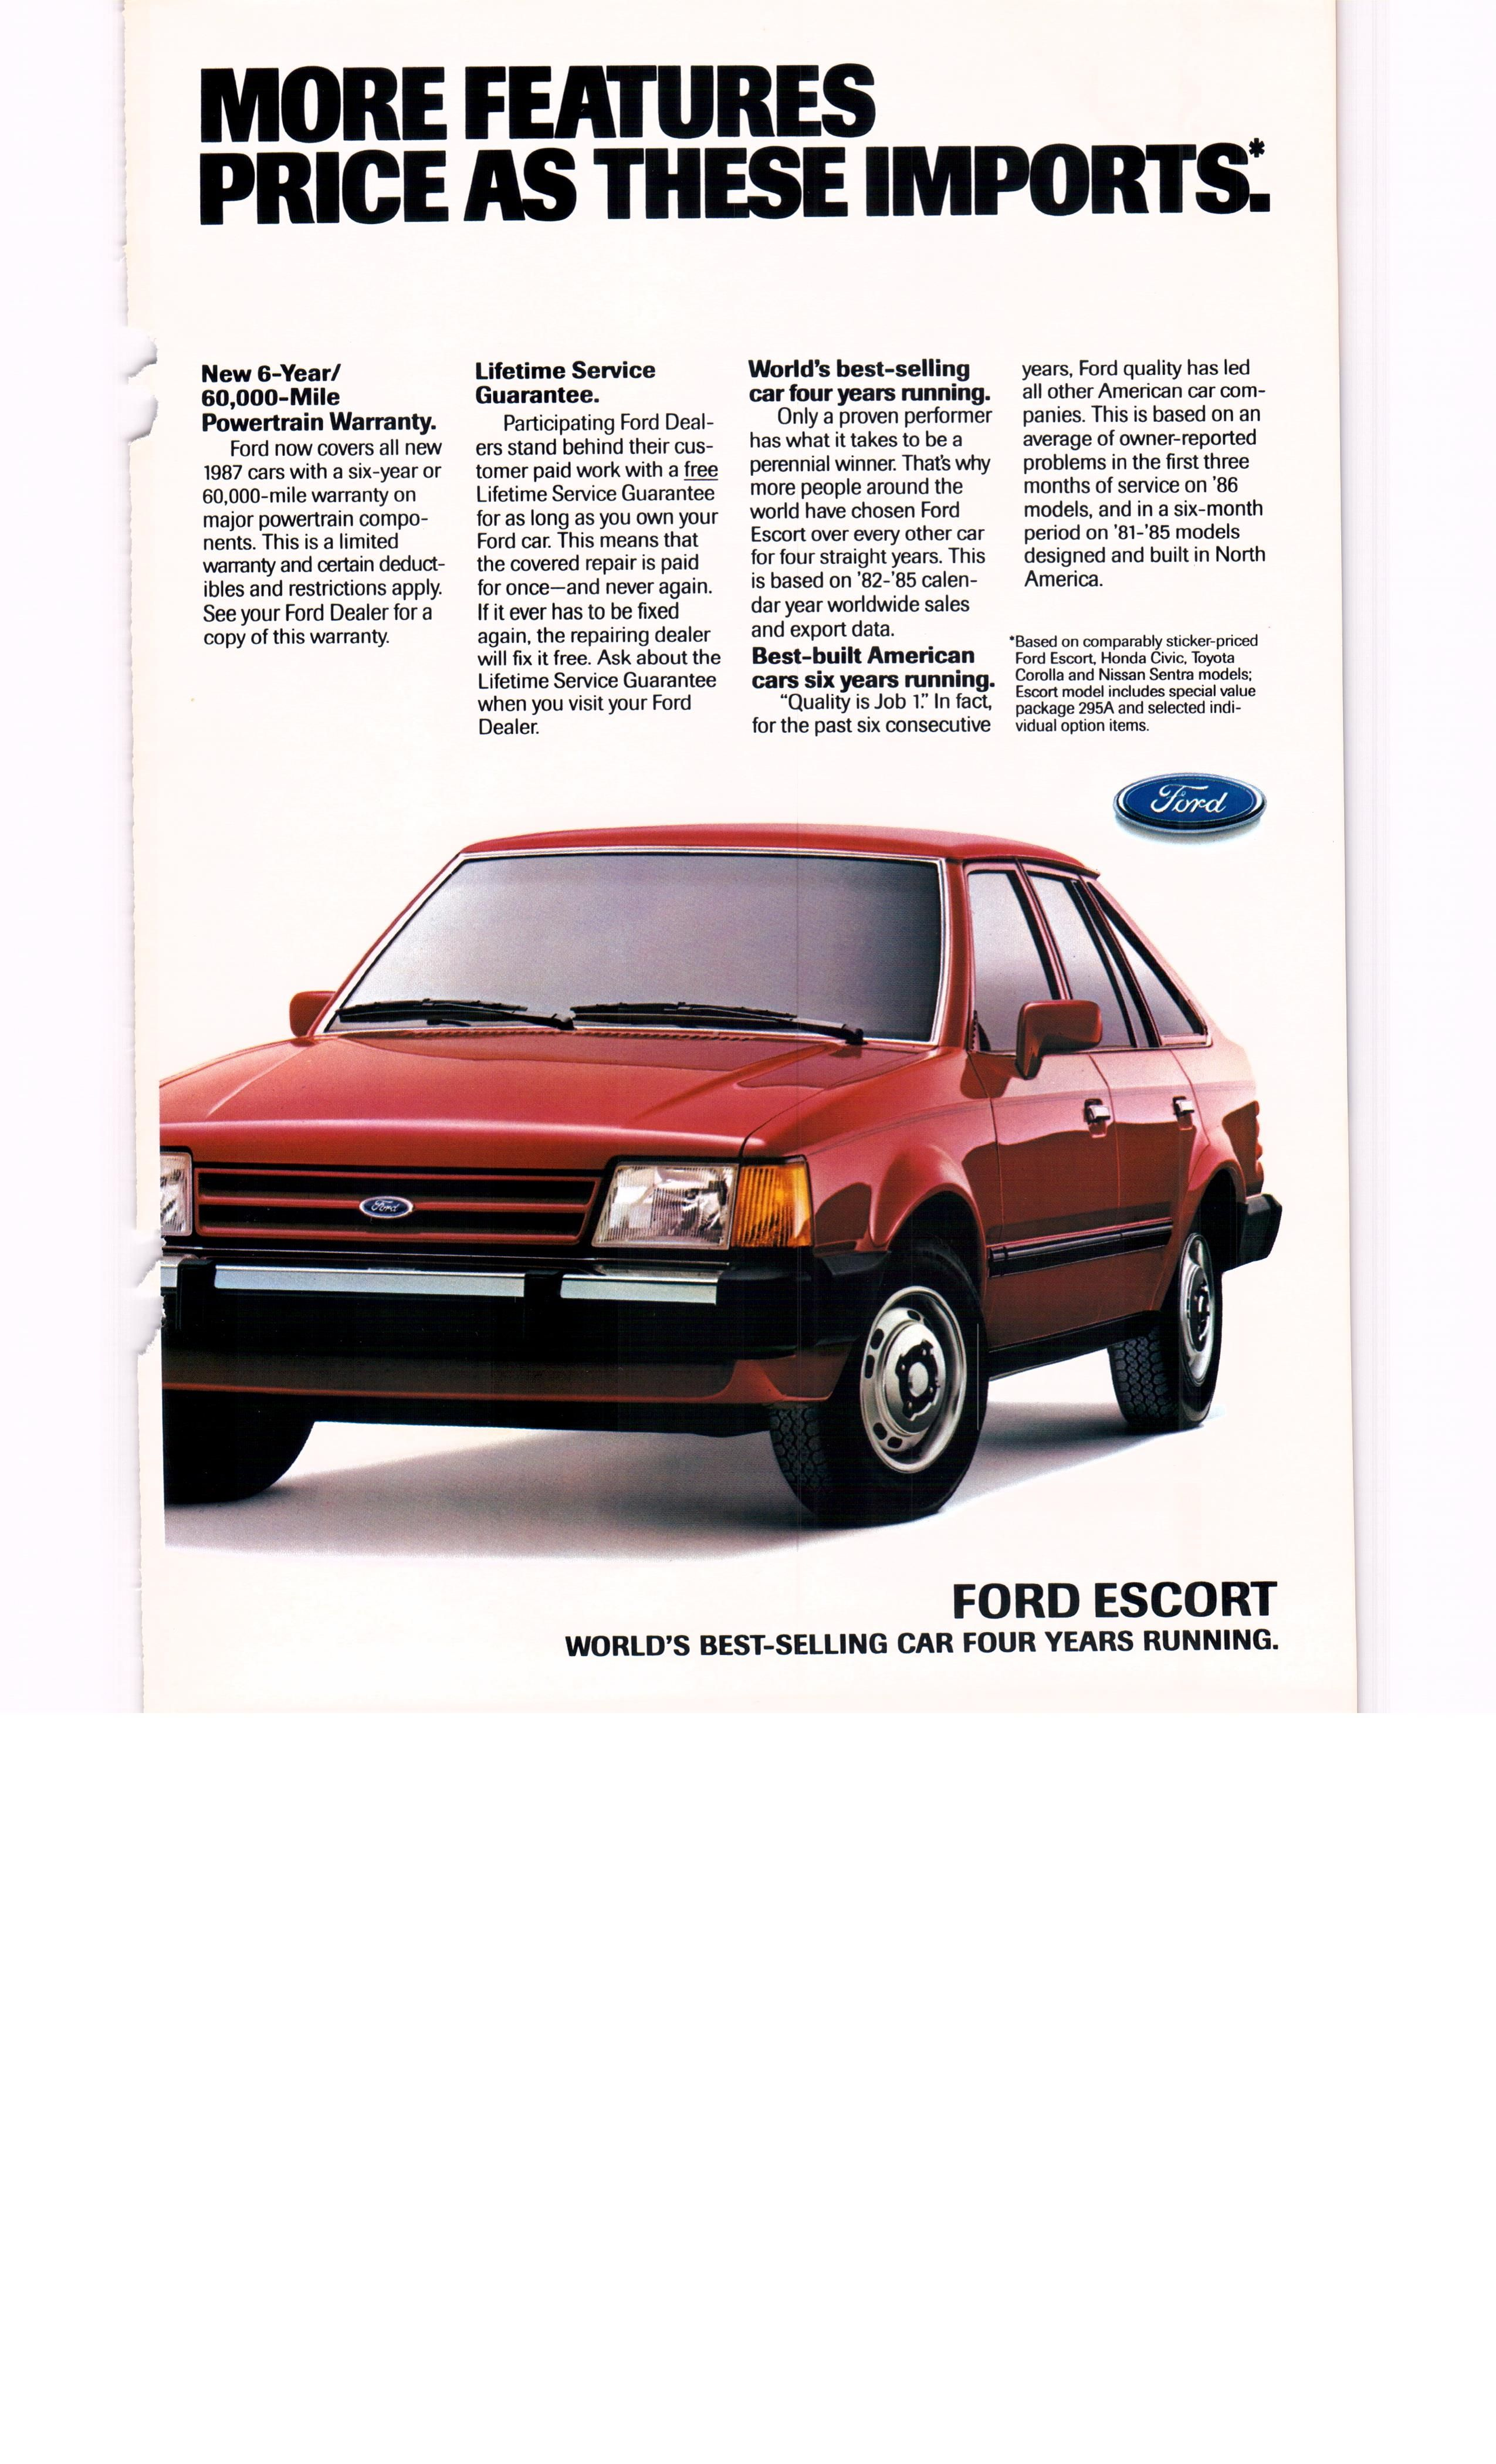 1987 ford escort ad 2 - national geographic april 1987 | vintage